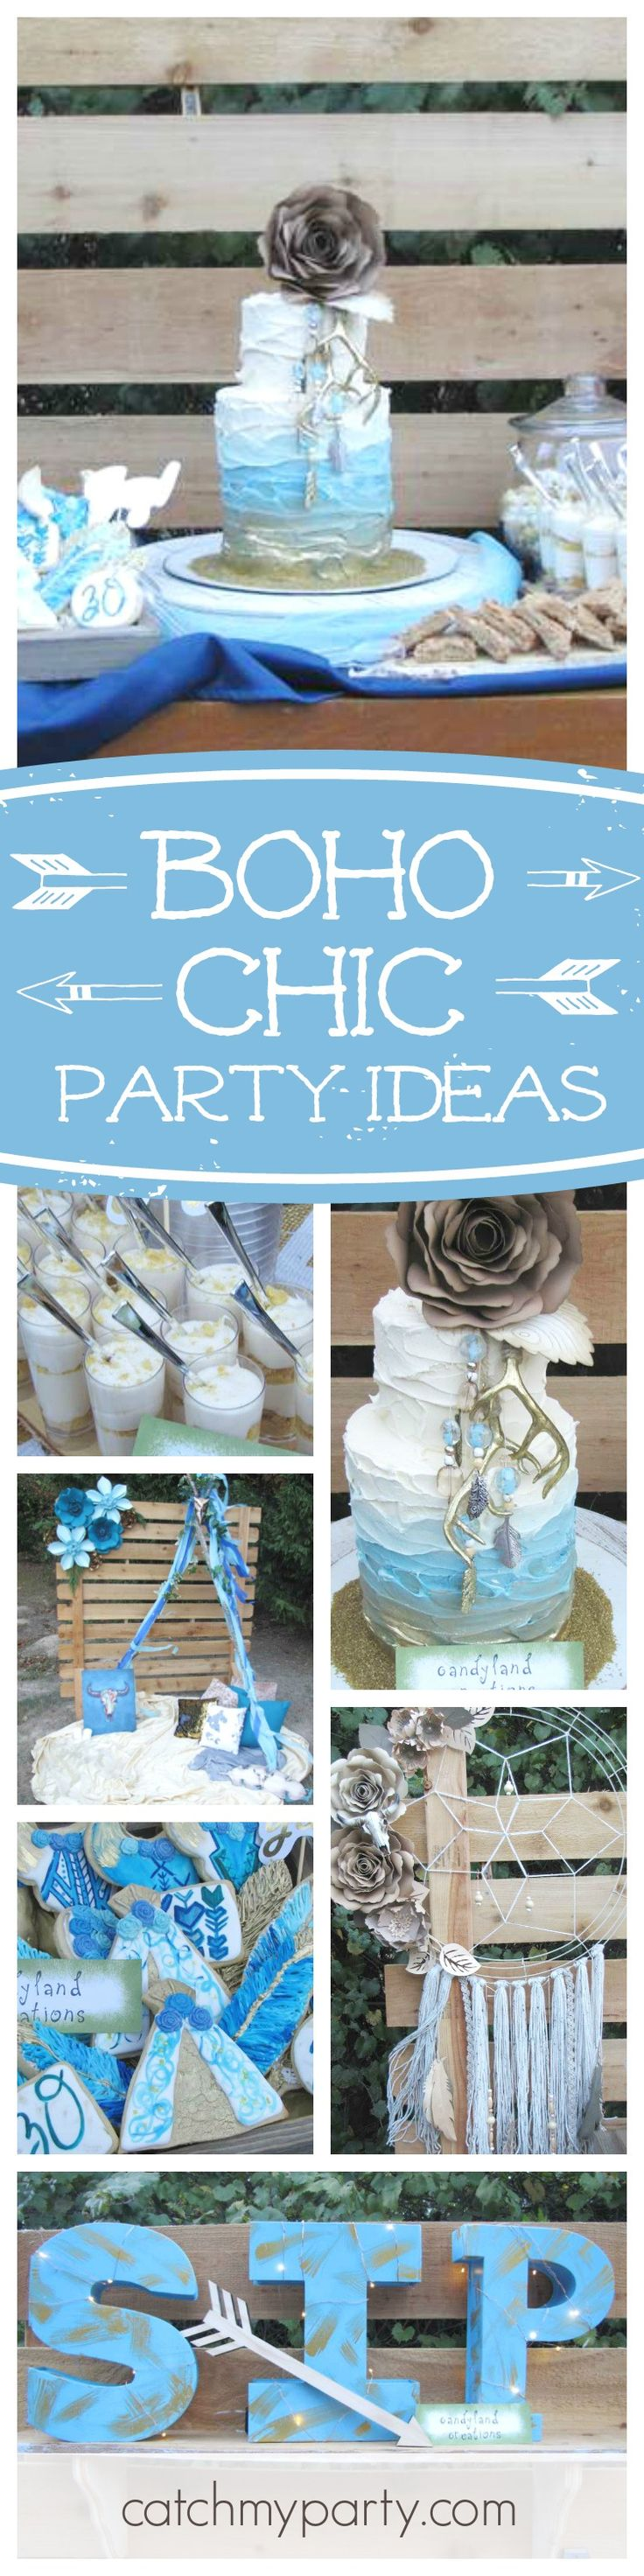 242 best Bohemian Tribal Party images on Pinterest Birthday